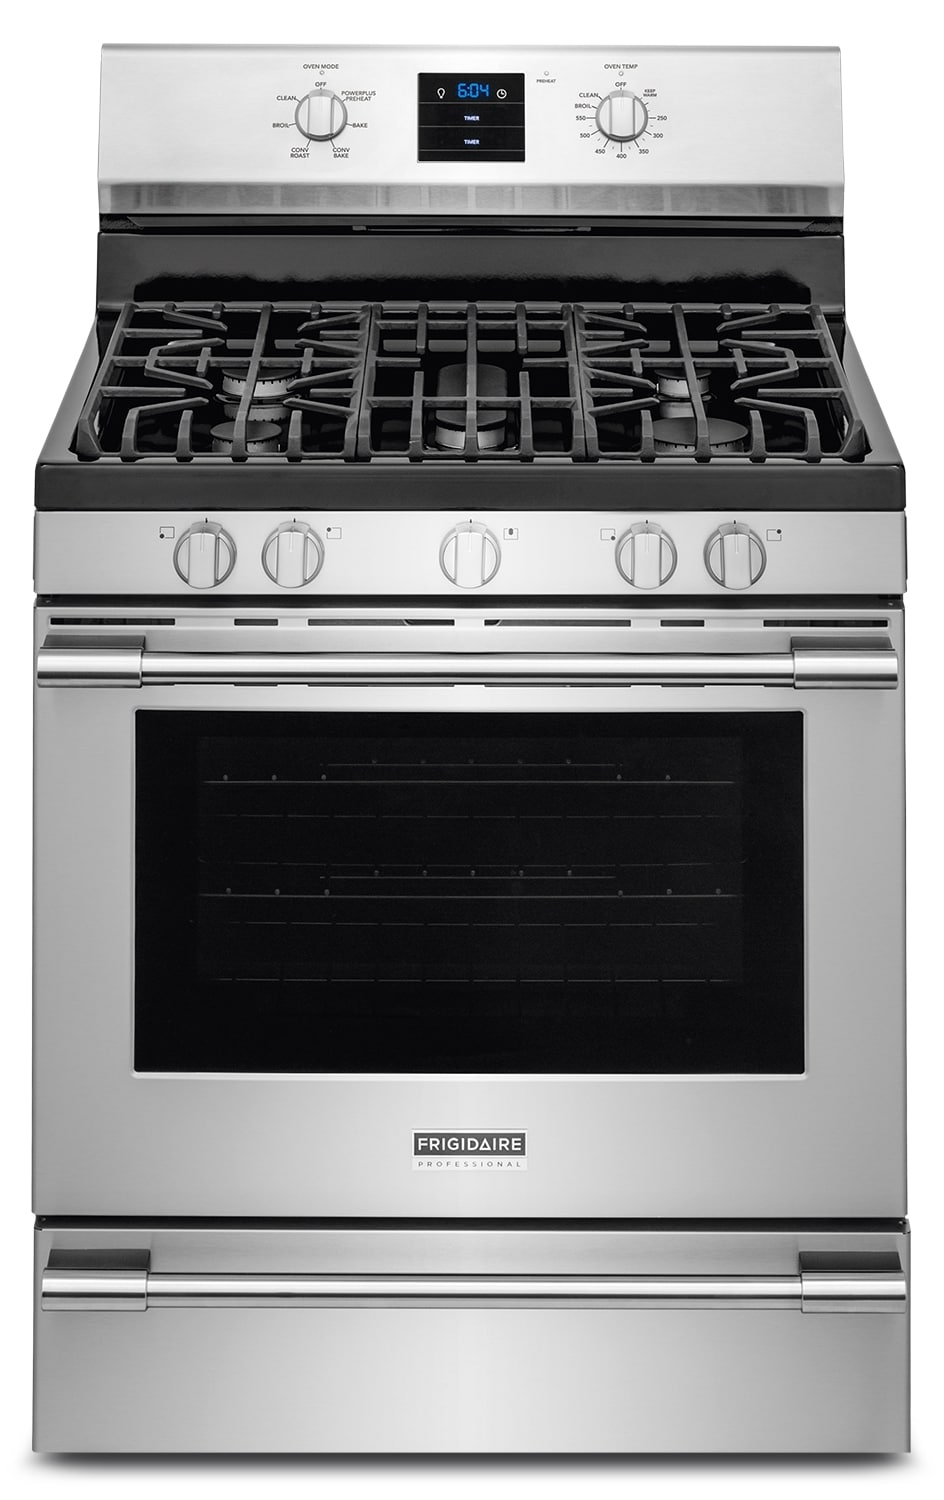 "Cooking Products - Frigidaire Professional 30"" Convection Gas Range - Stainless Steel"